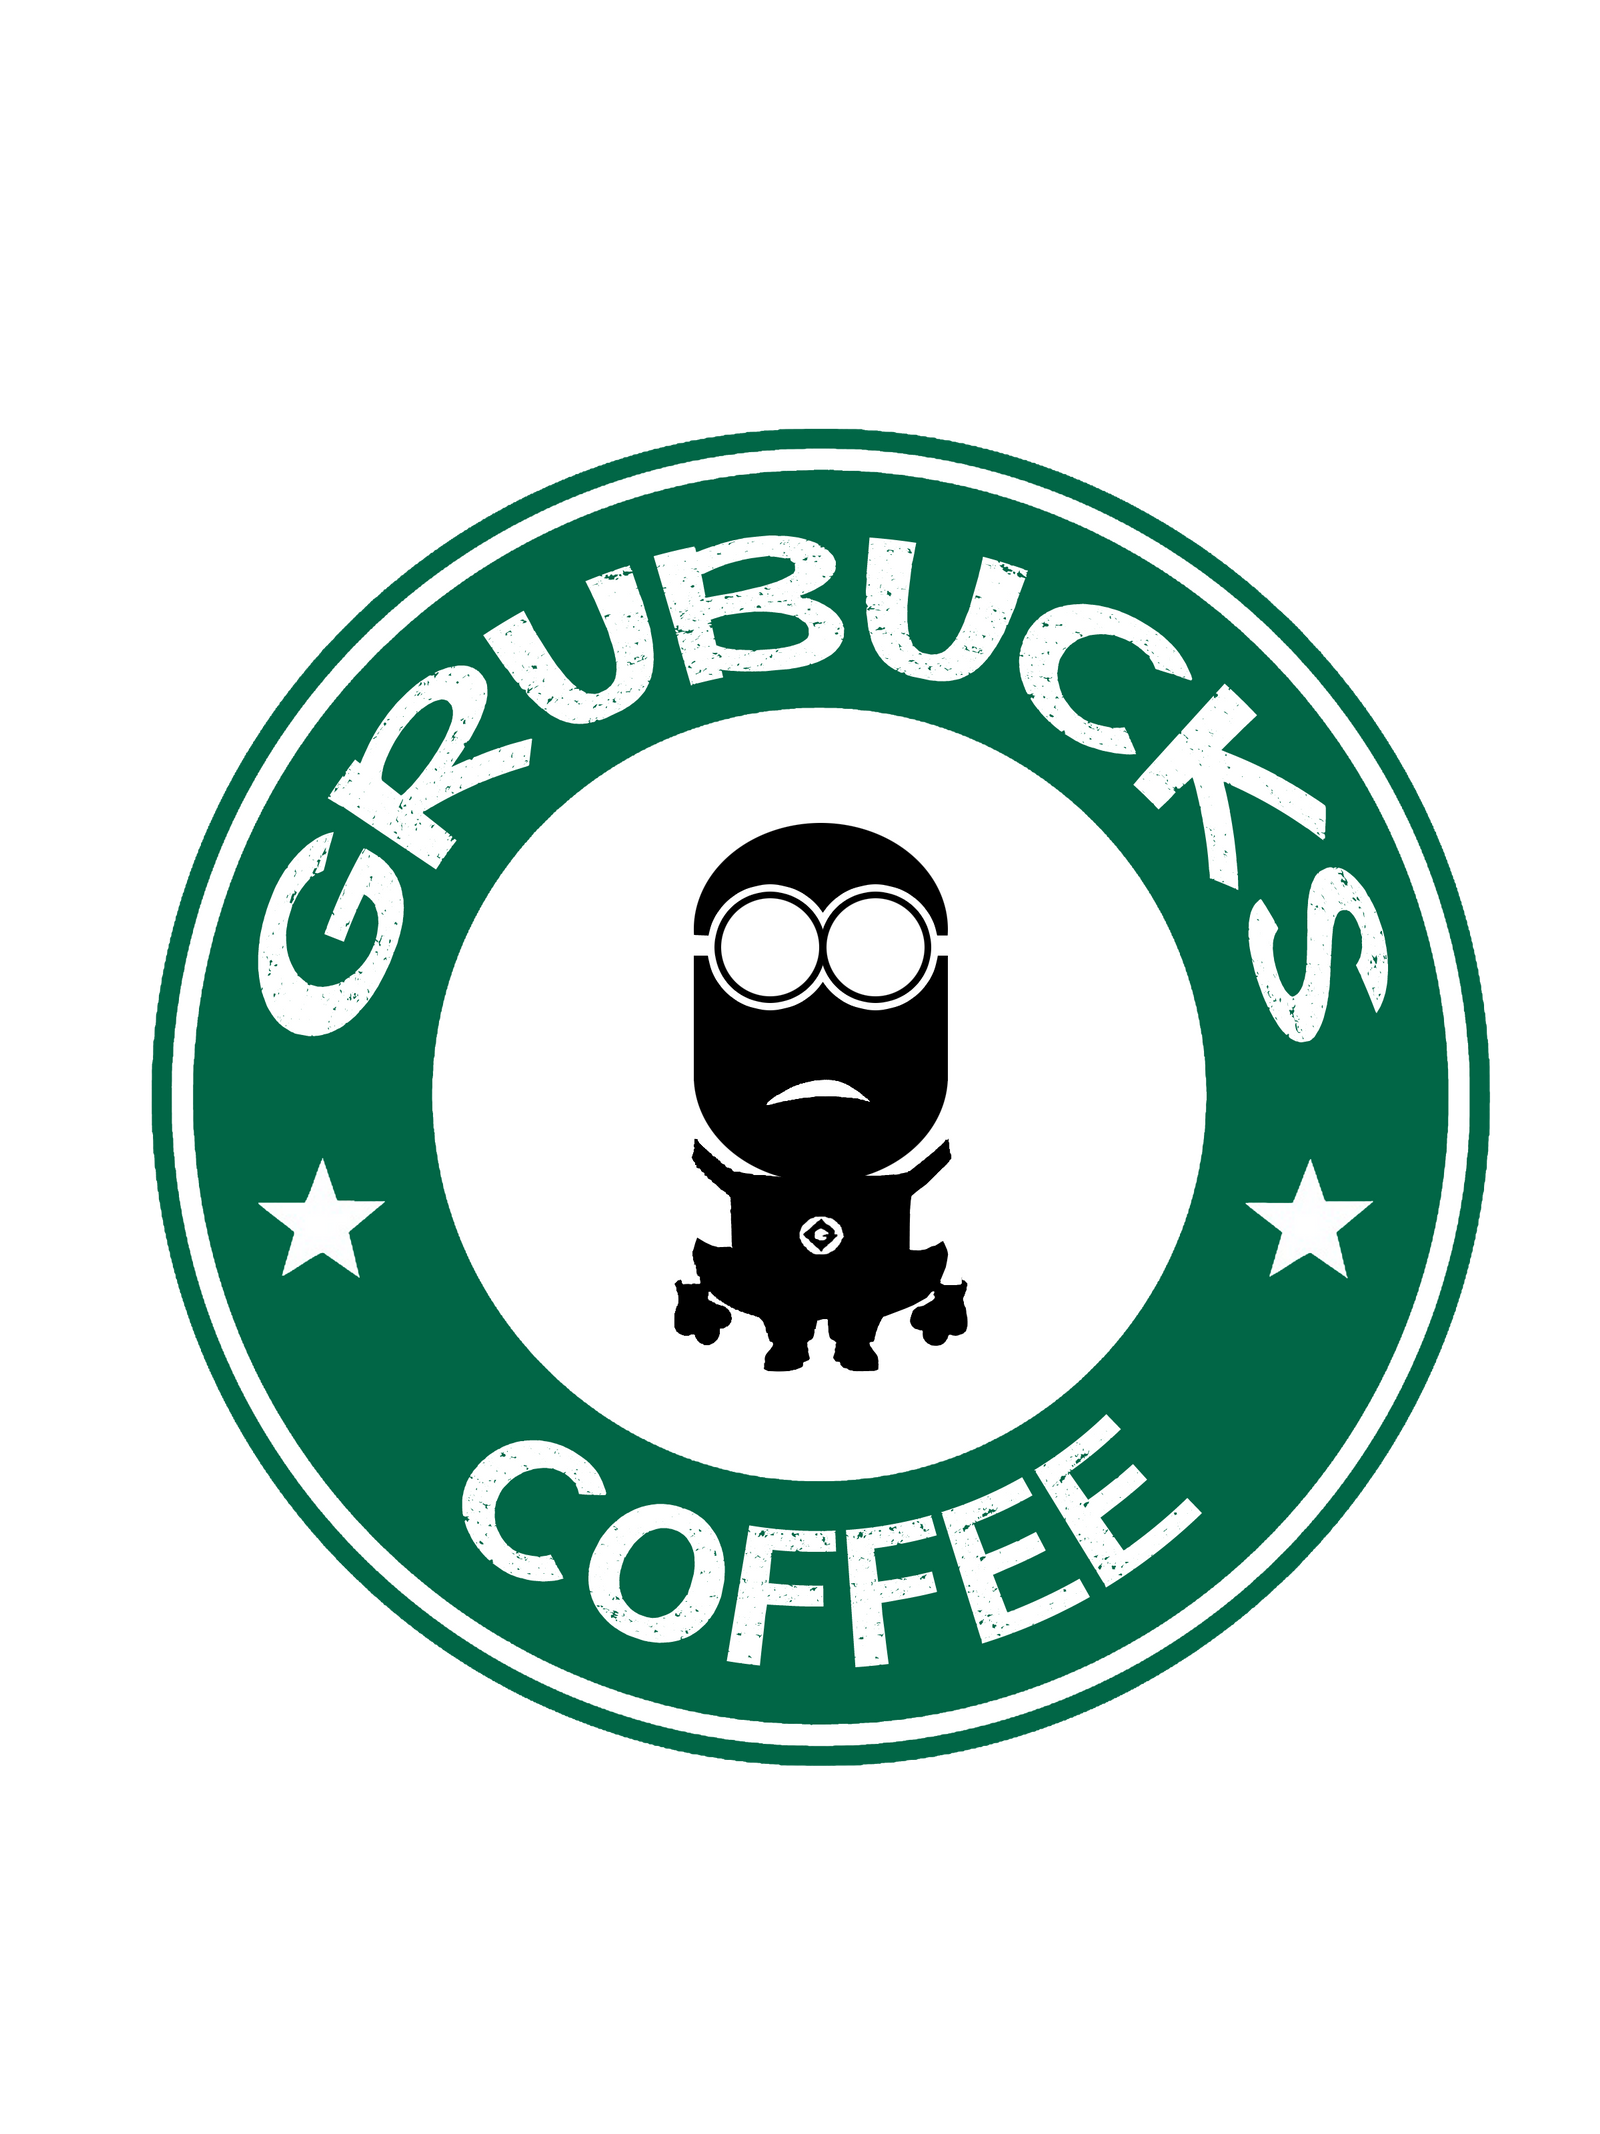 Despicable me grubucks coffee by oak19 on deviantart despicable me grubucks coffee by oak19 biocorpaavc Image collections